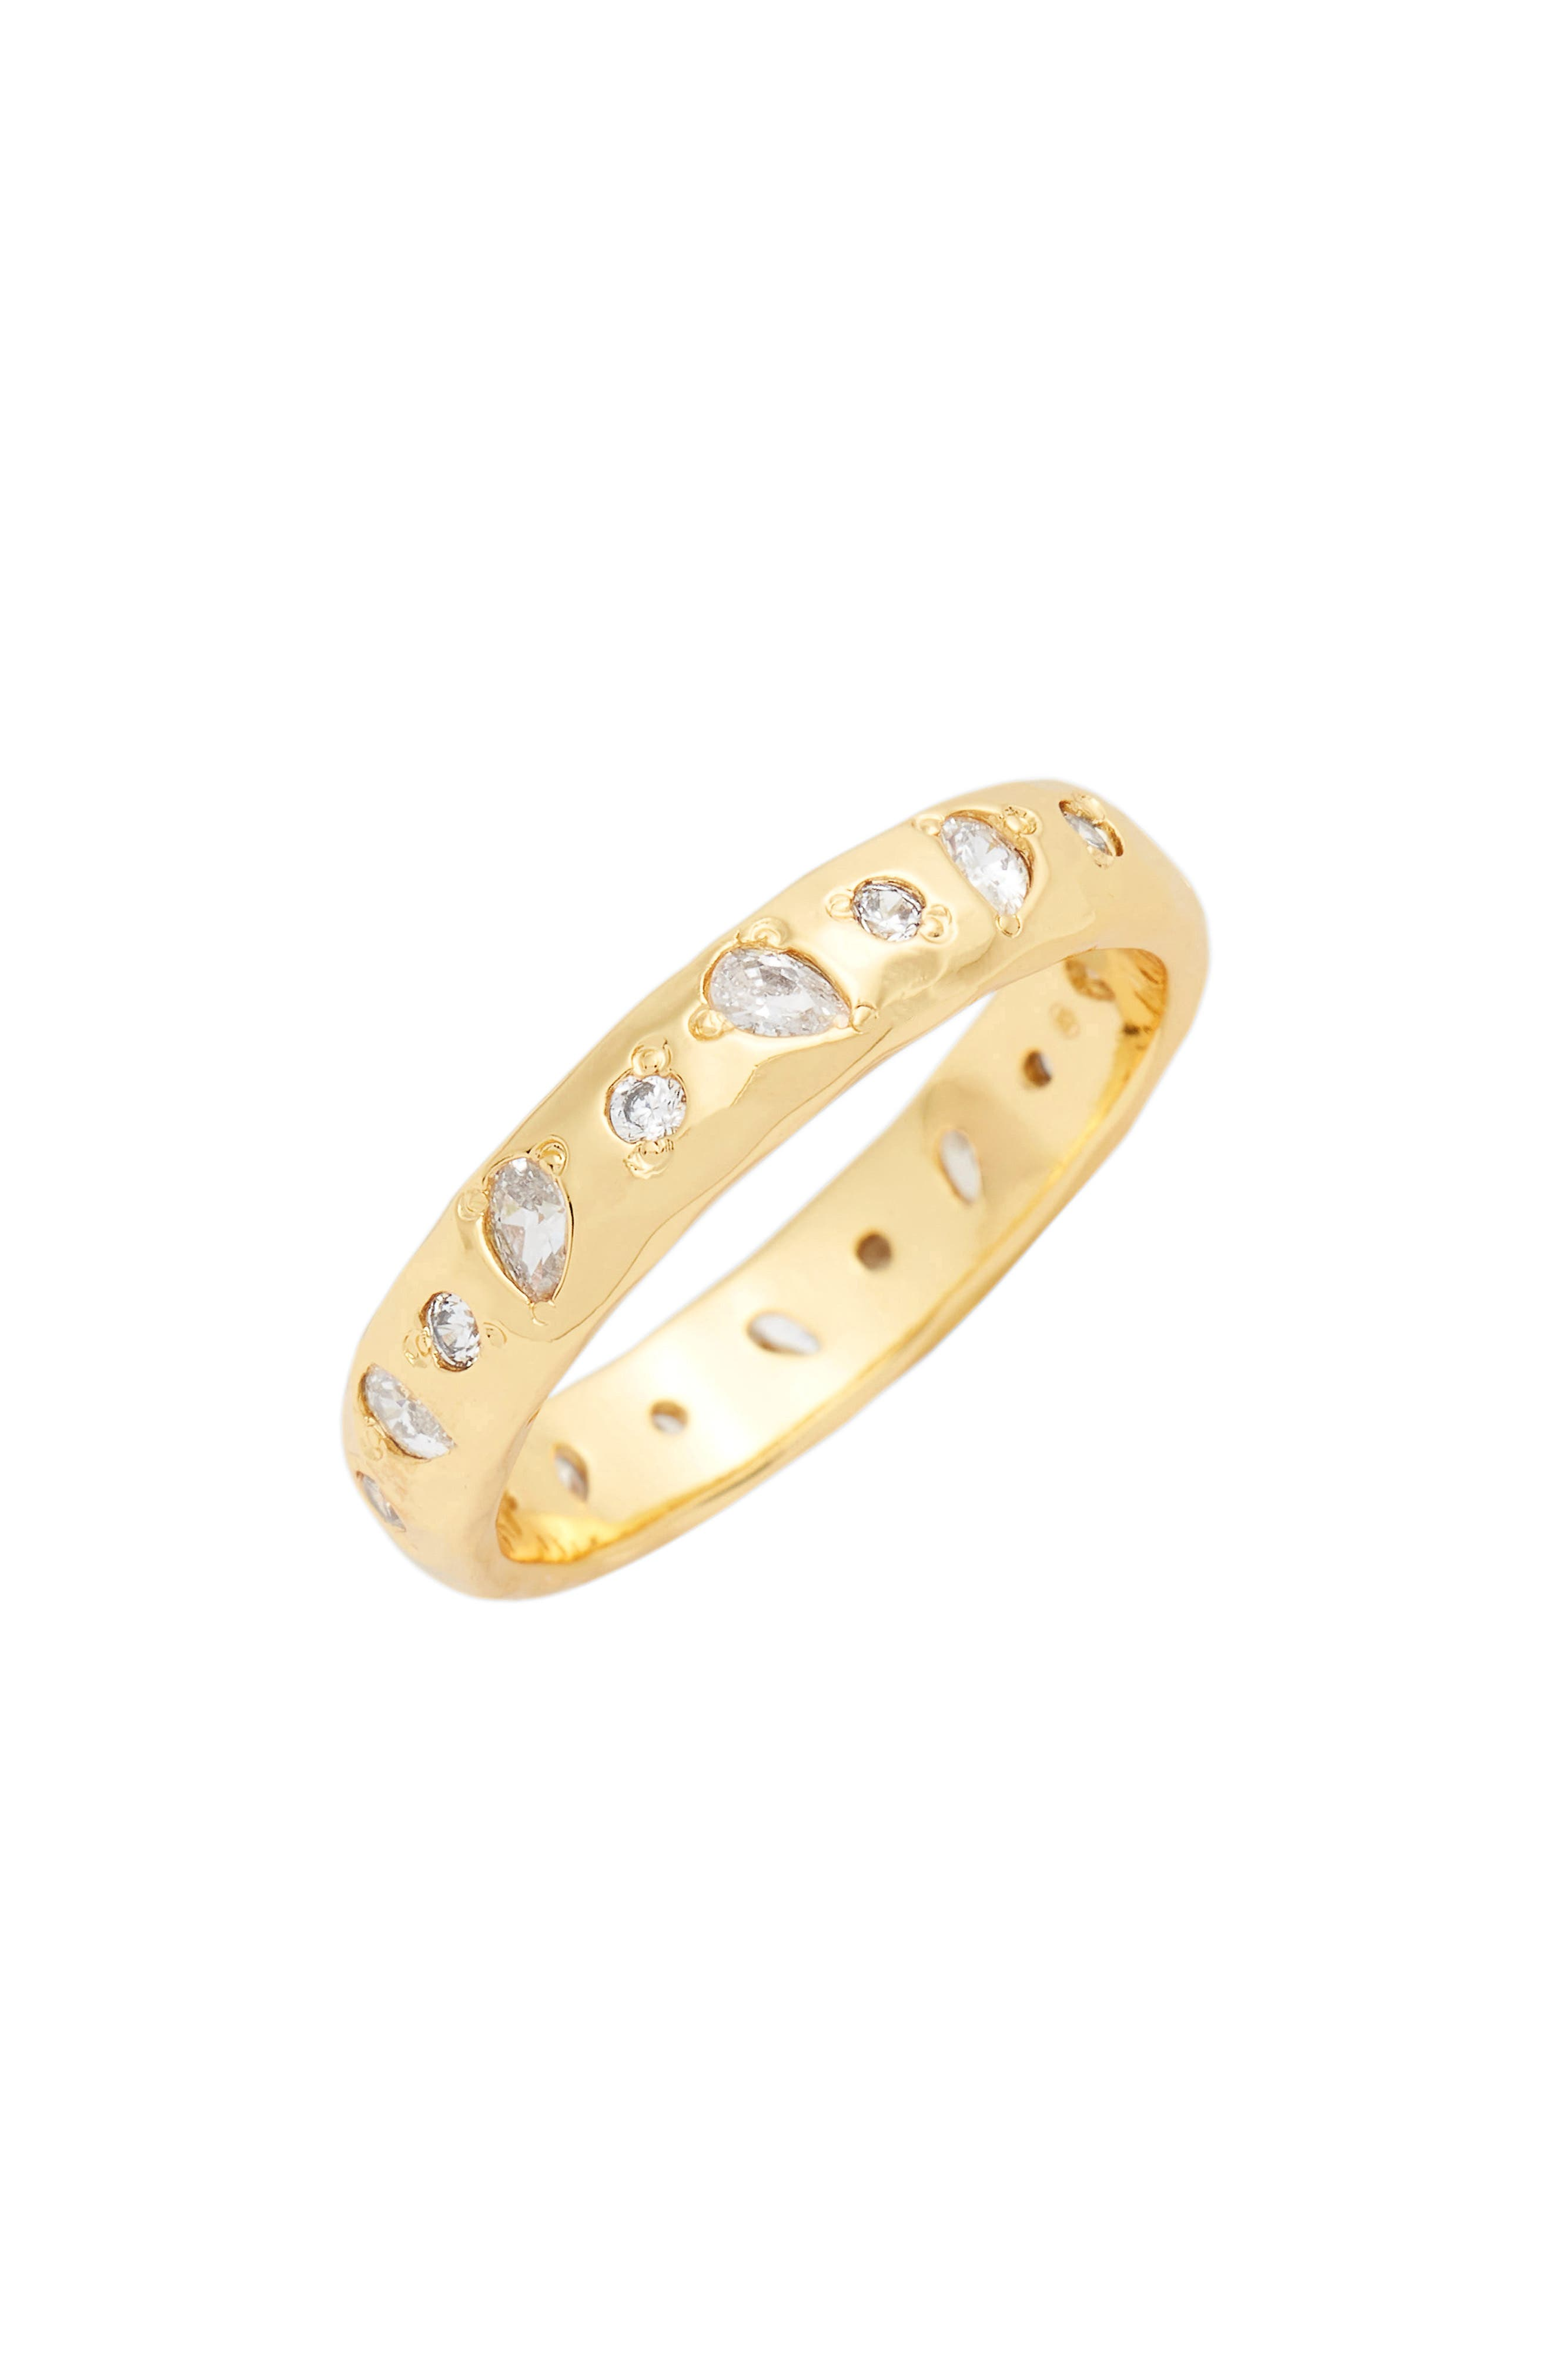 Collette Ring,                             Main thumbnail 1, color,                             GOLD